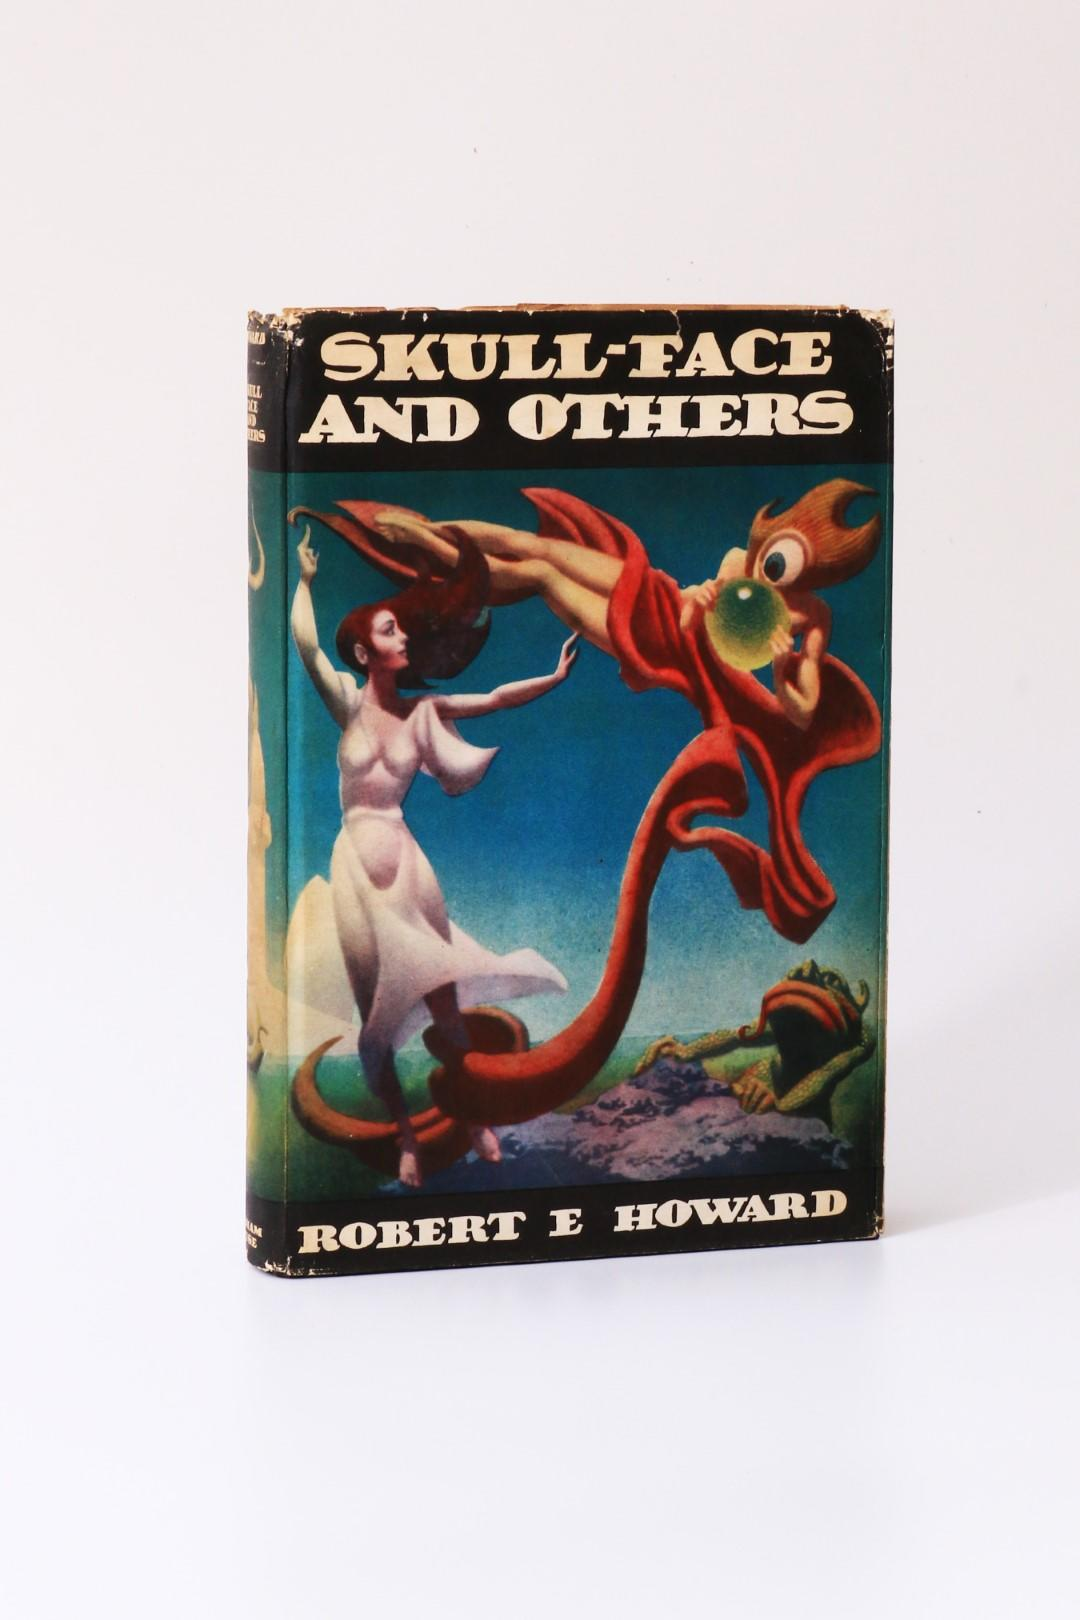 Robert E. Howard - Skull-Face and Others - Arkham House, 1946, First Edition.